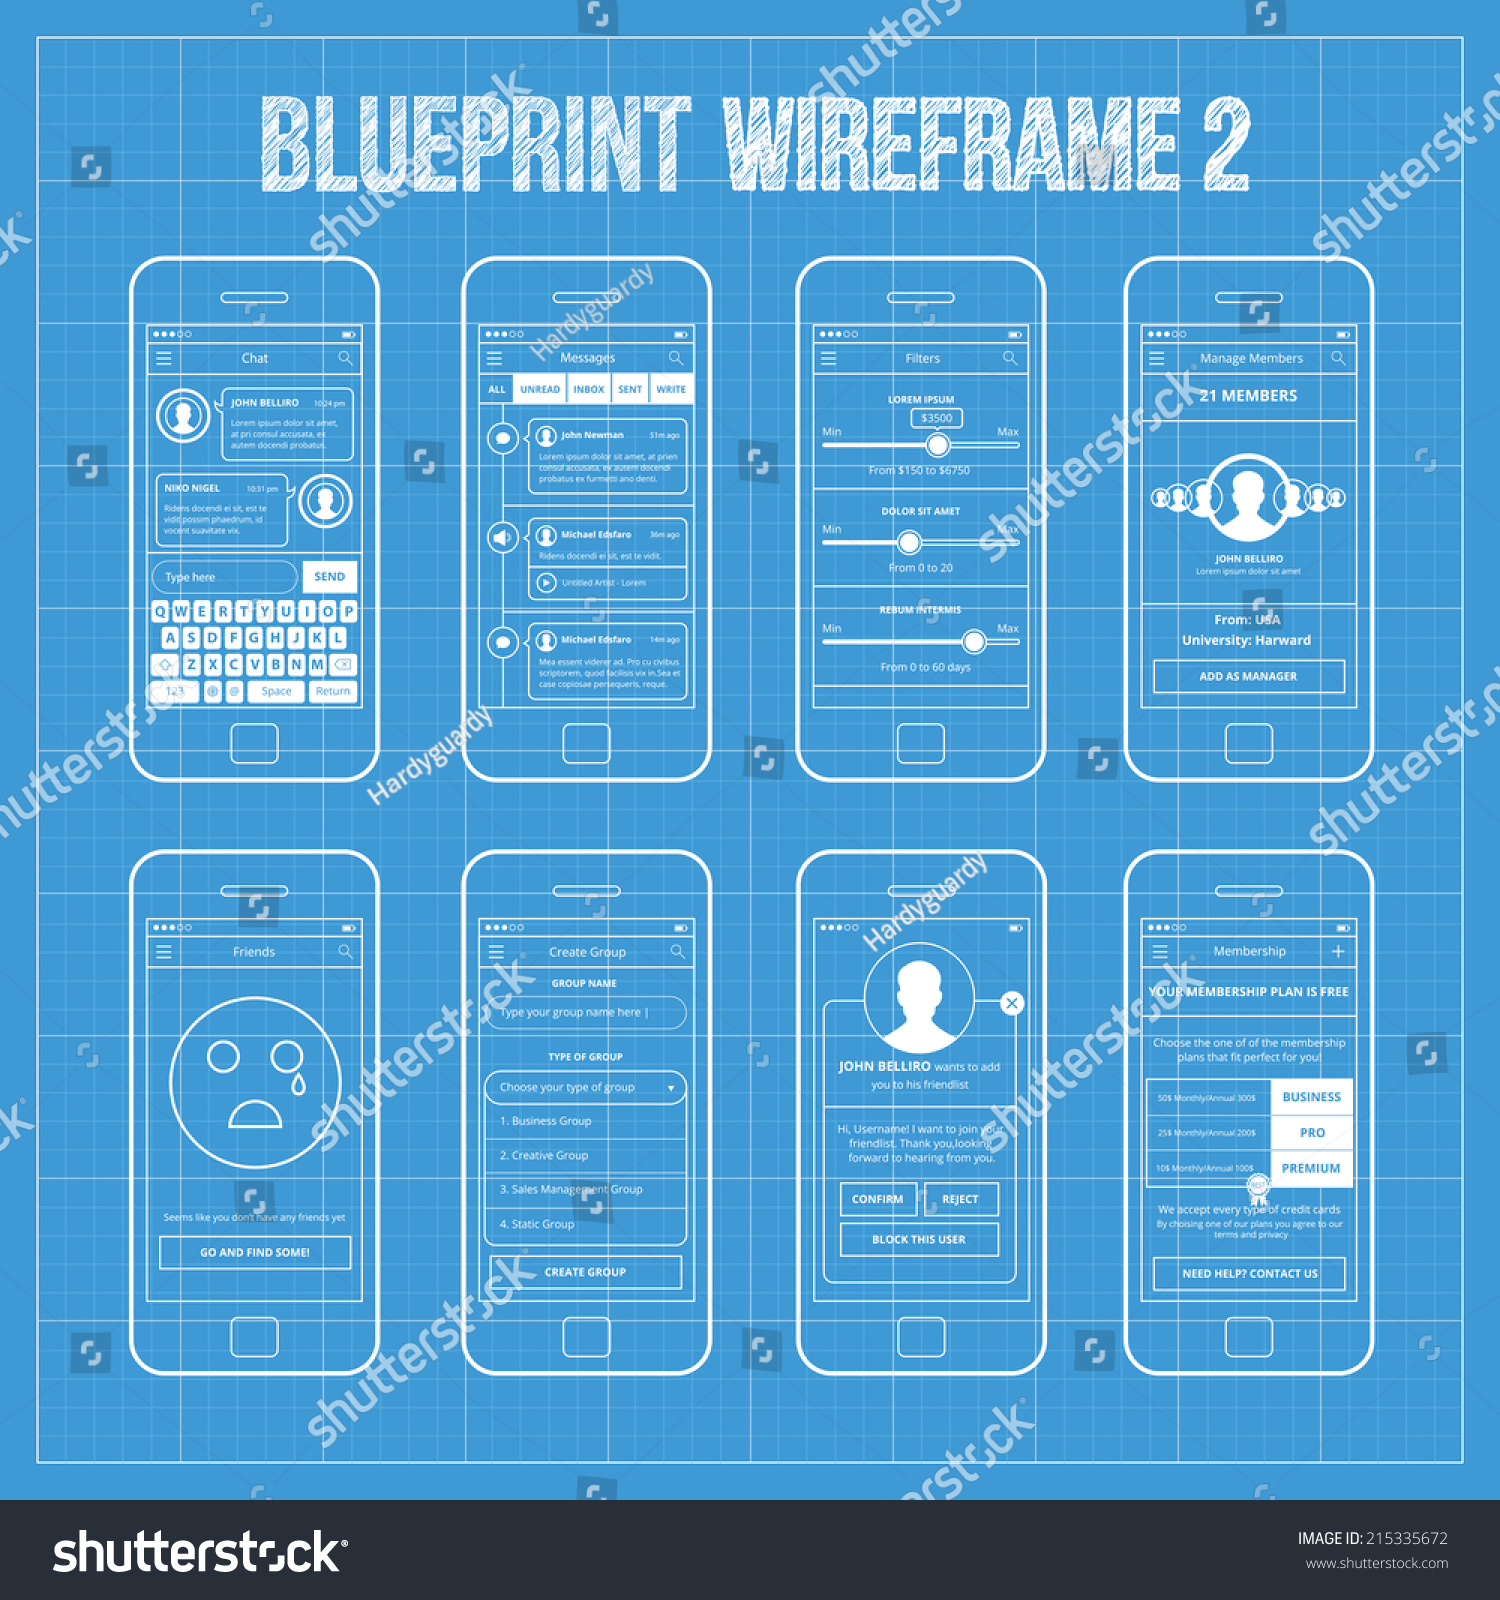 Blueprint wireframe mobile app ui kit stock vector 215335672 blueprint wireframe mobile app ui kit 2 chat screen messages screen filters screen malvernweather Gallery